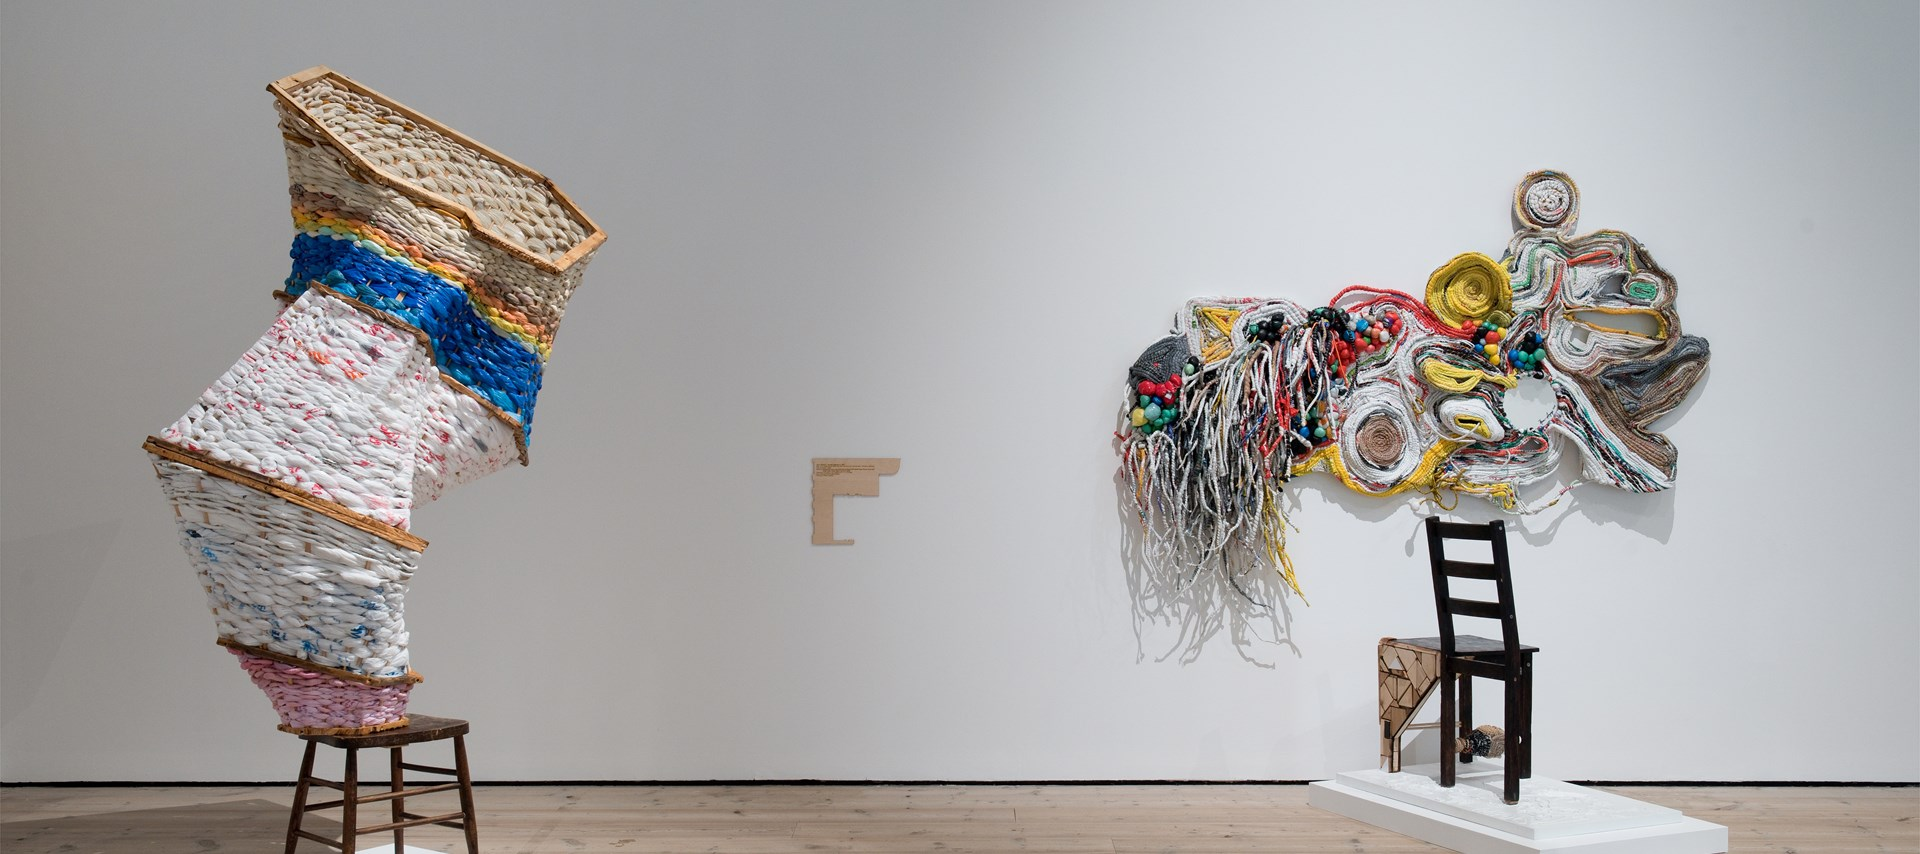 Ifeoma U. Anyaeji: Ezuhu ezu – In(complete): Installation View by Colin Davison. © BALTIC, 2019